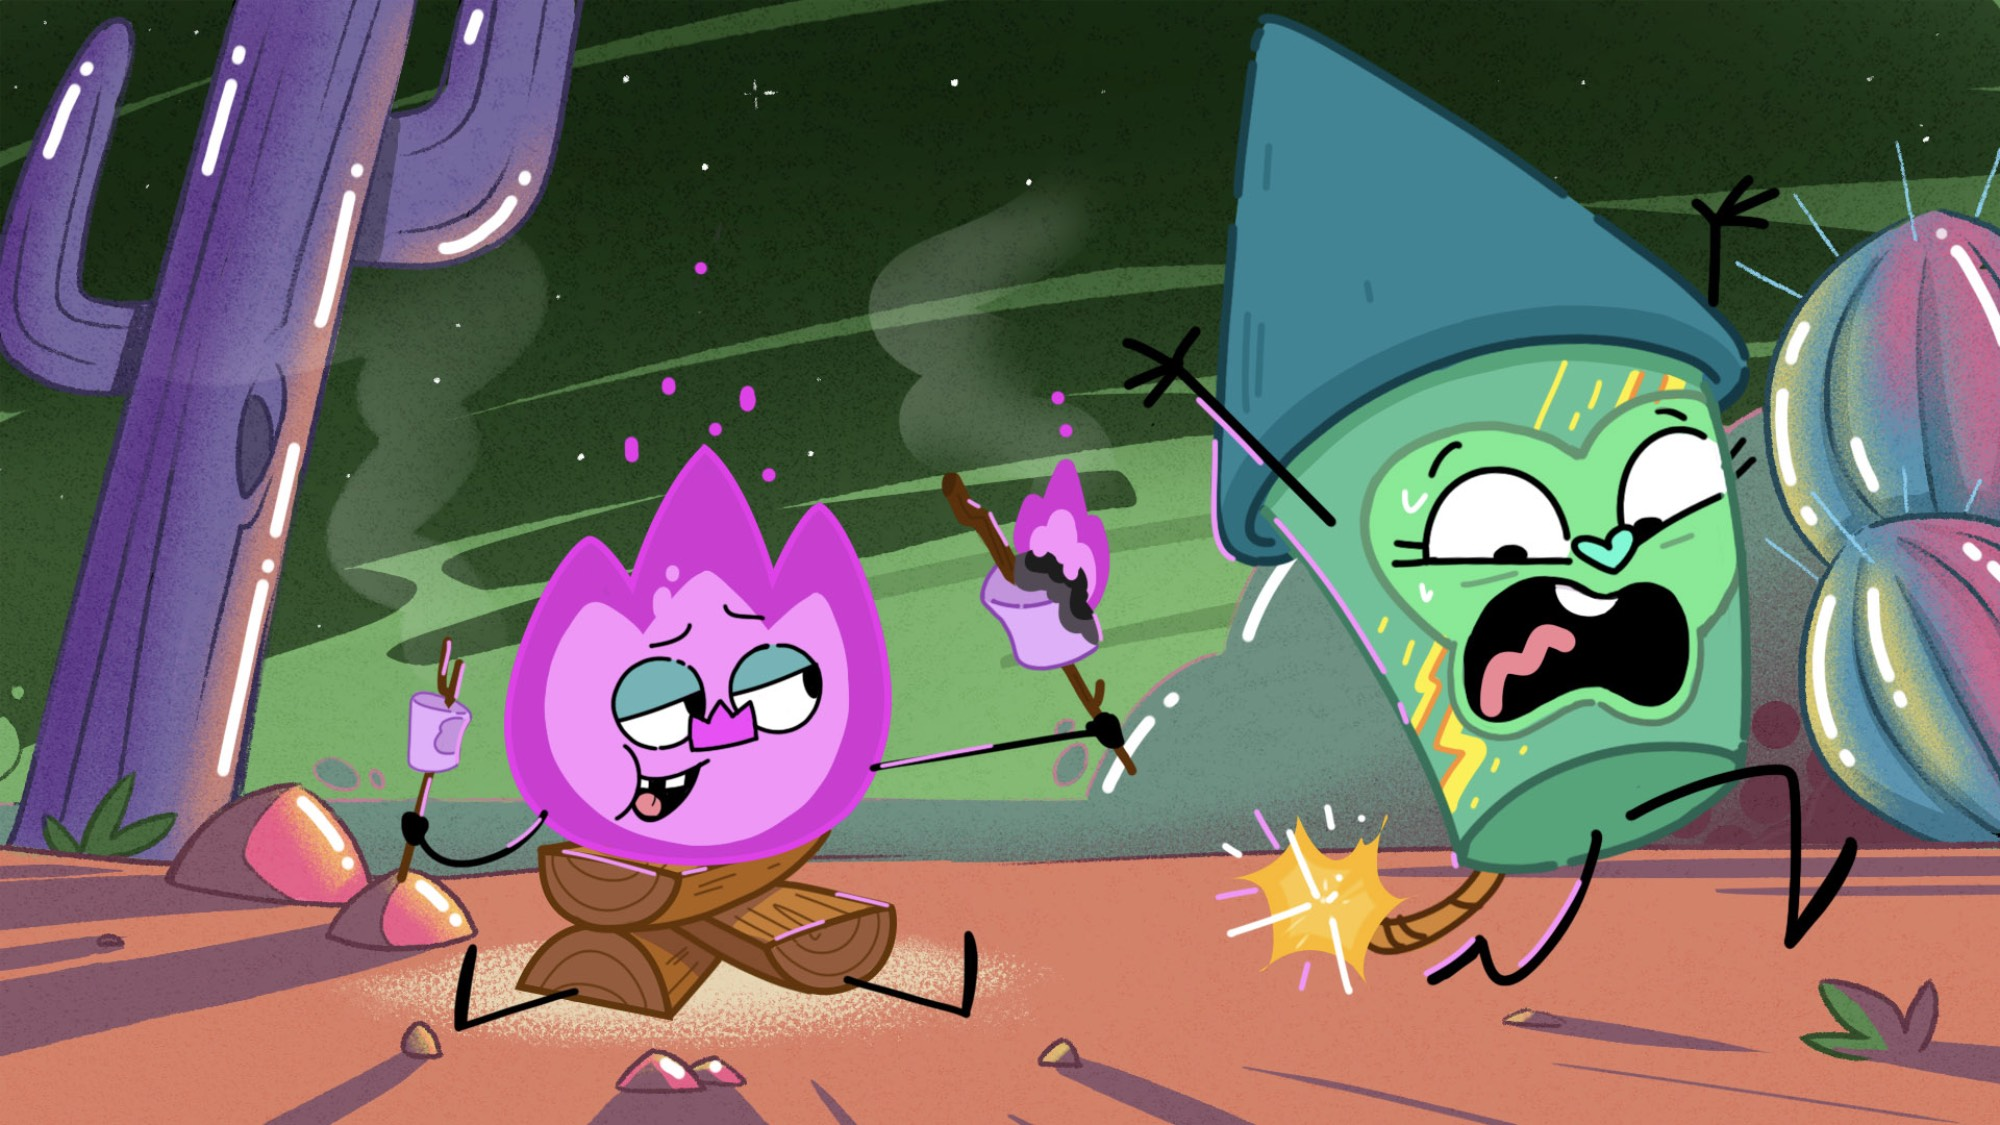 Animated characters Best and Bester transformed into fire and fireworks